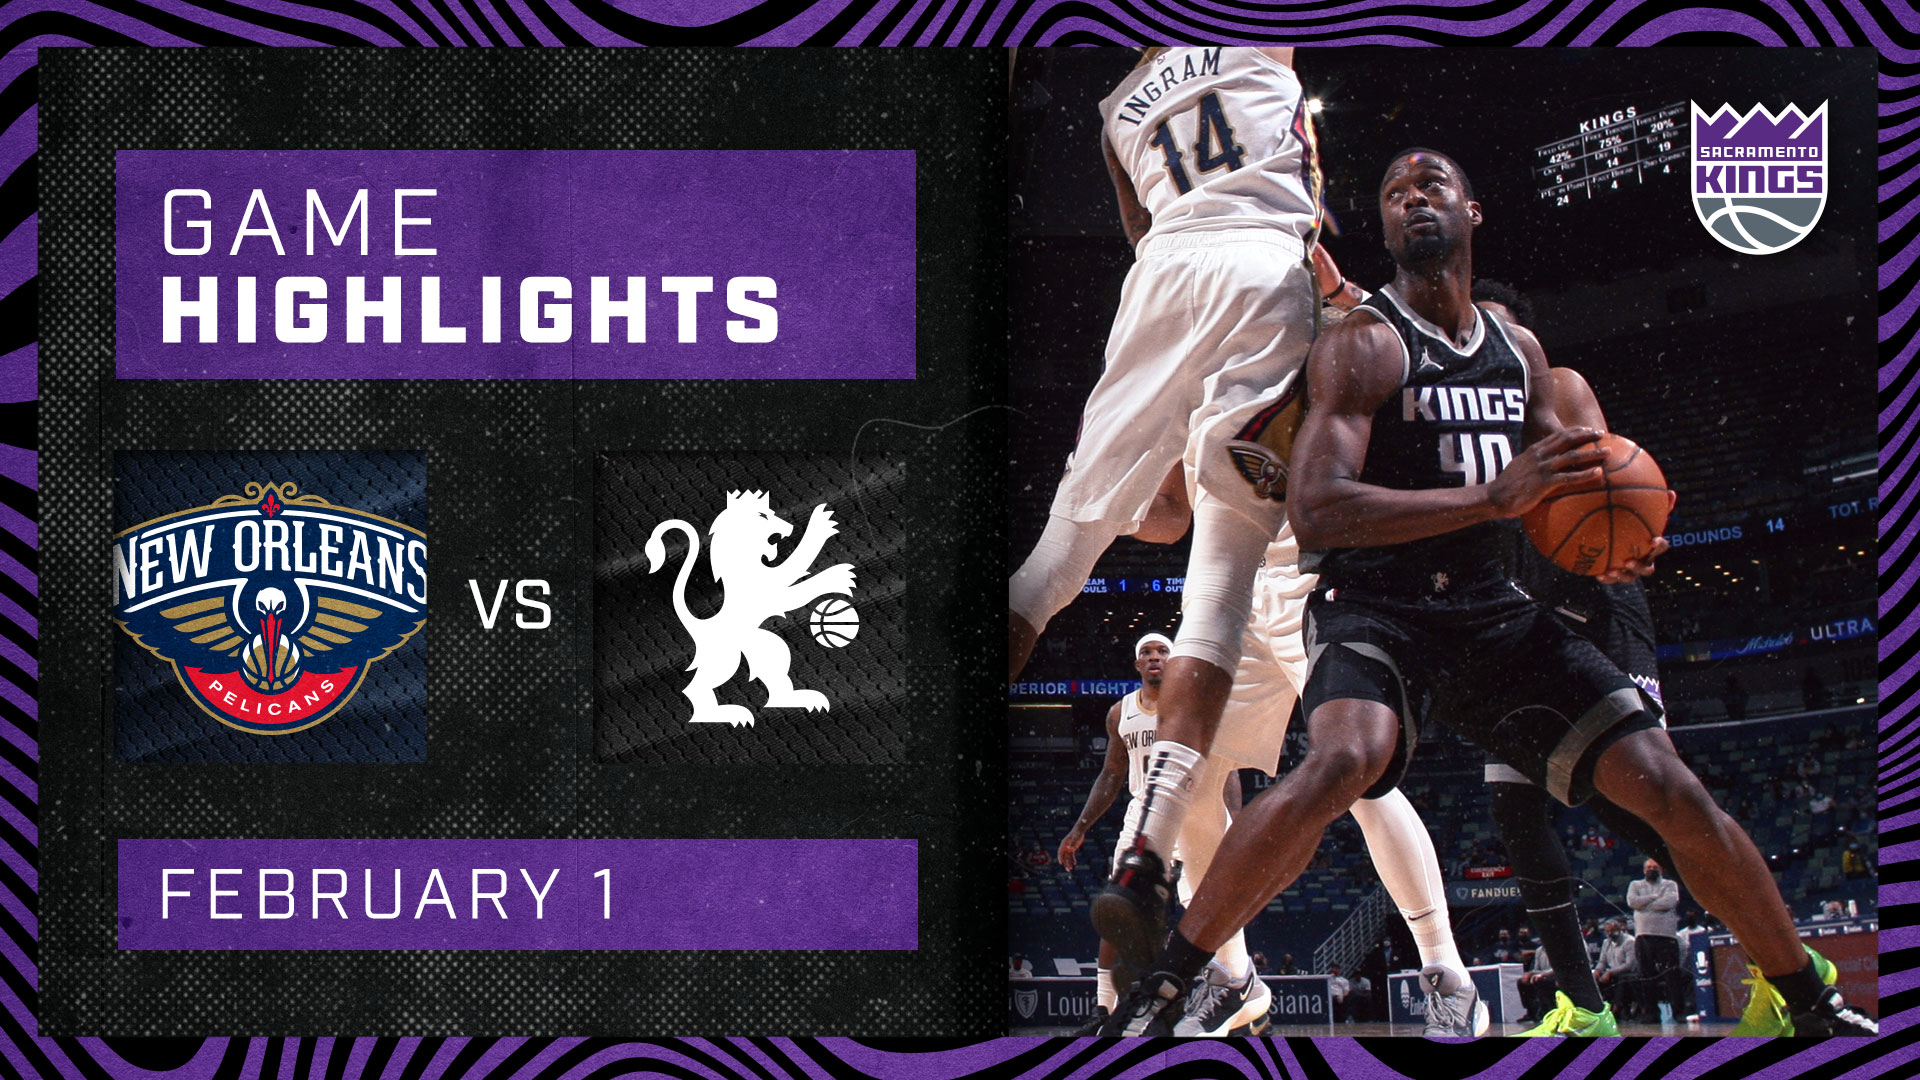 Kings Close Out Road Trip with Thrilling W in NOLA | Kings vs Pelicans 2.1.21